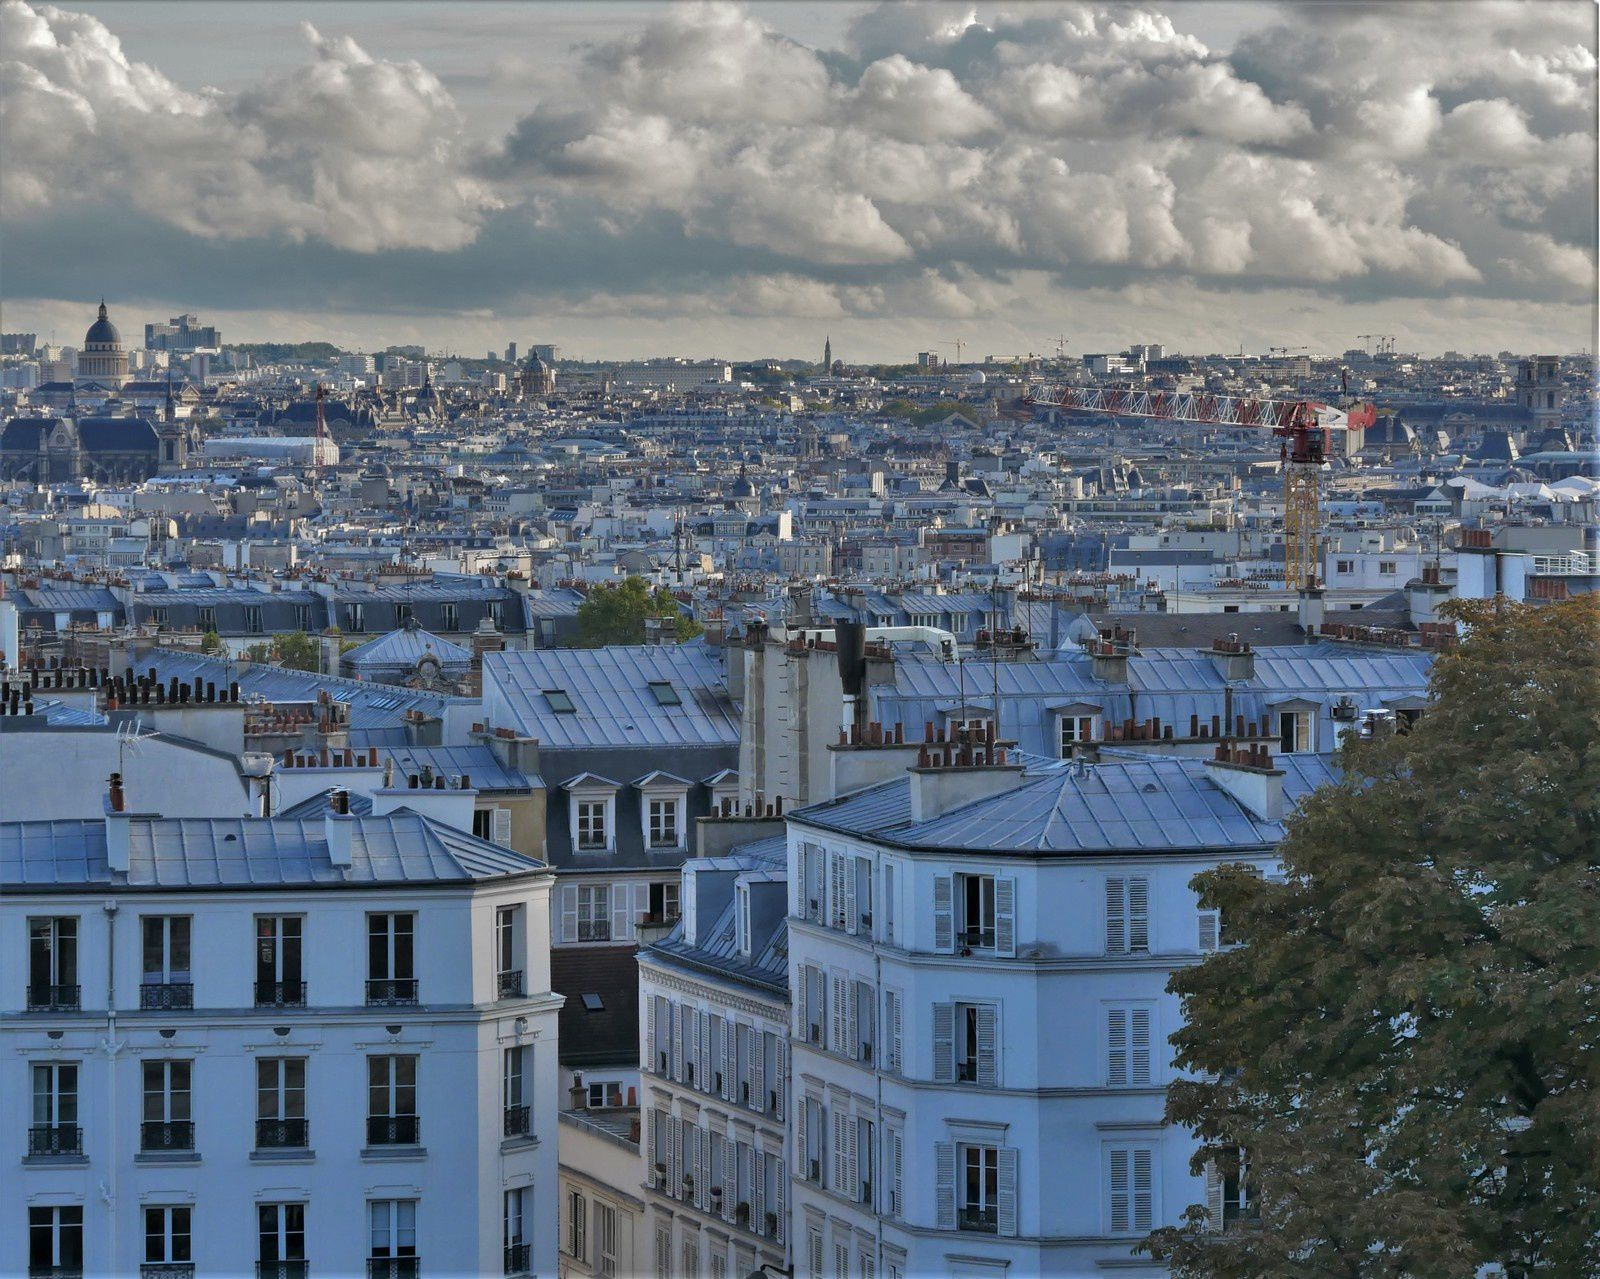 Album photos de Montmartre en octobre 2020